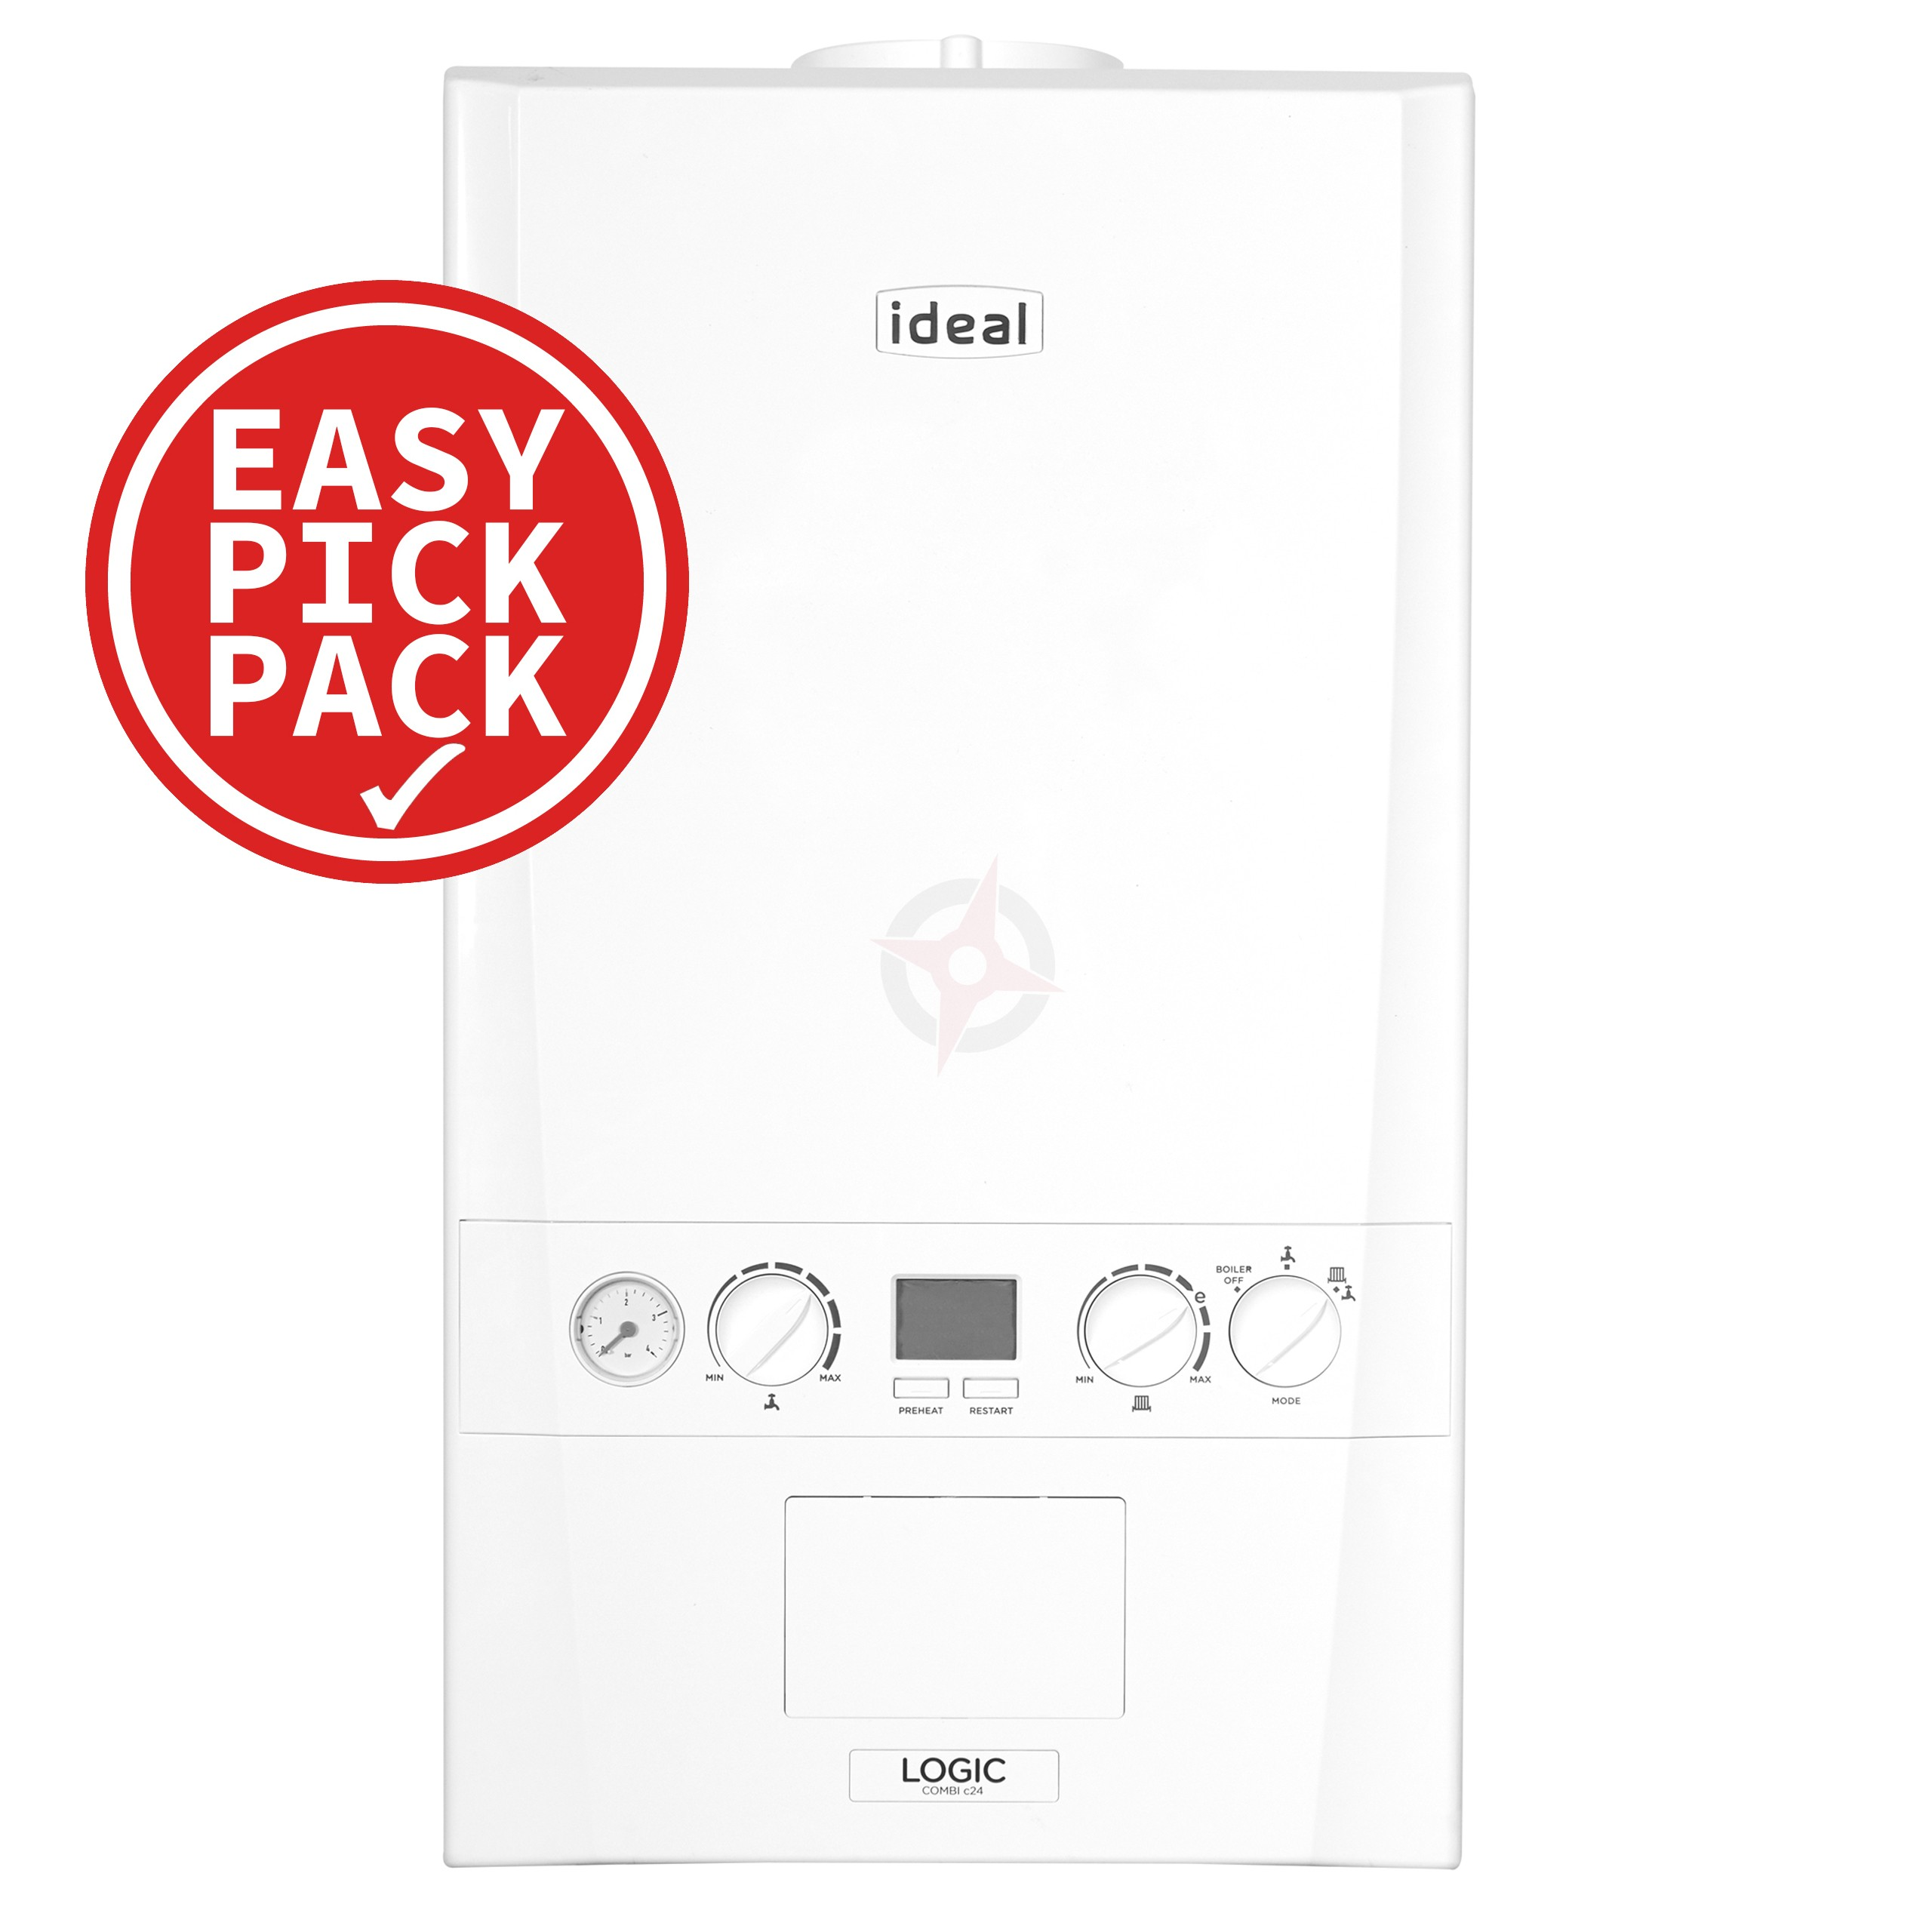 Ideal Logic 35 (ErP) Combi Boiler Easy Pick Pack